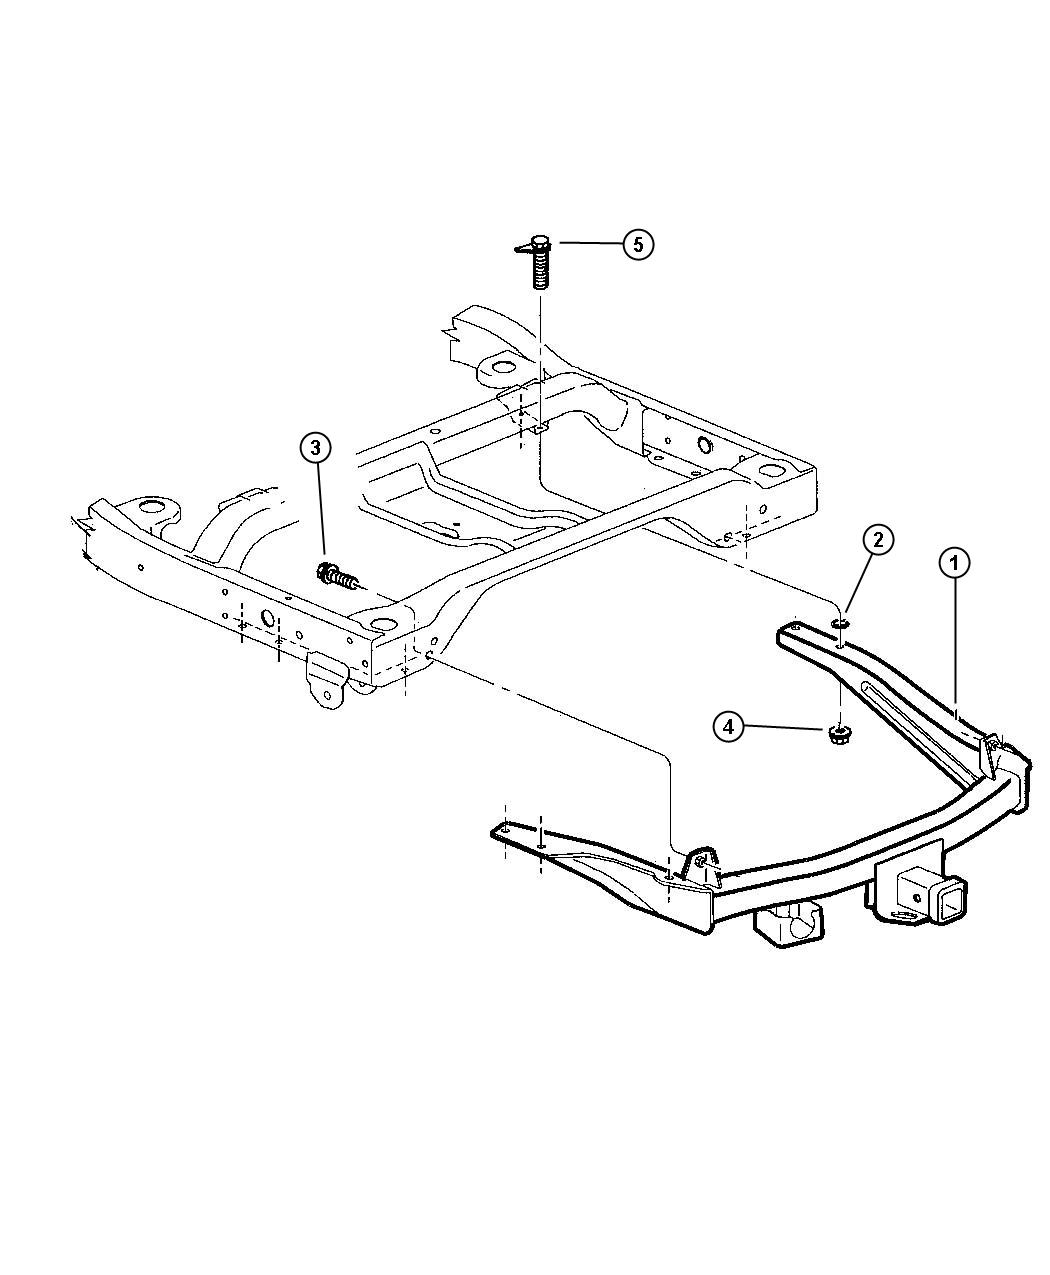 jeep bumper hitch with Showassembly on 331410983992 additionally 377500512 likewise Toyota Fender Trim Parts Diagram further Jee ranglermods besides WB14785.